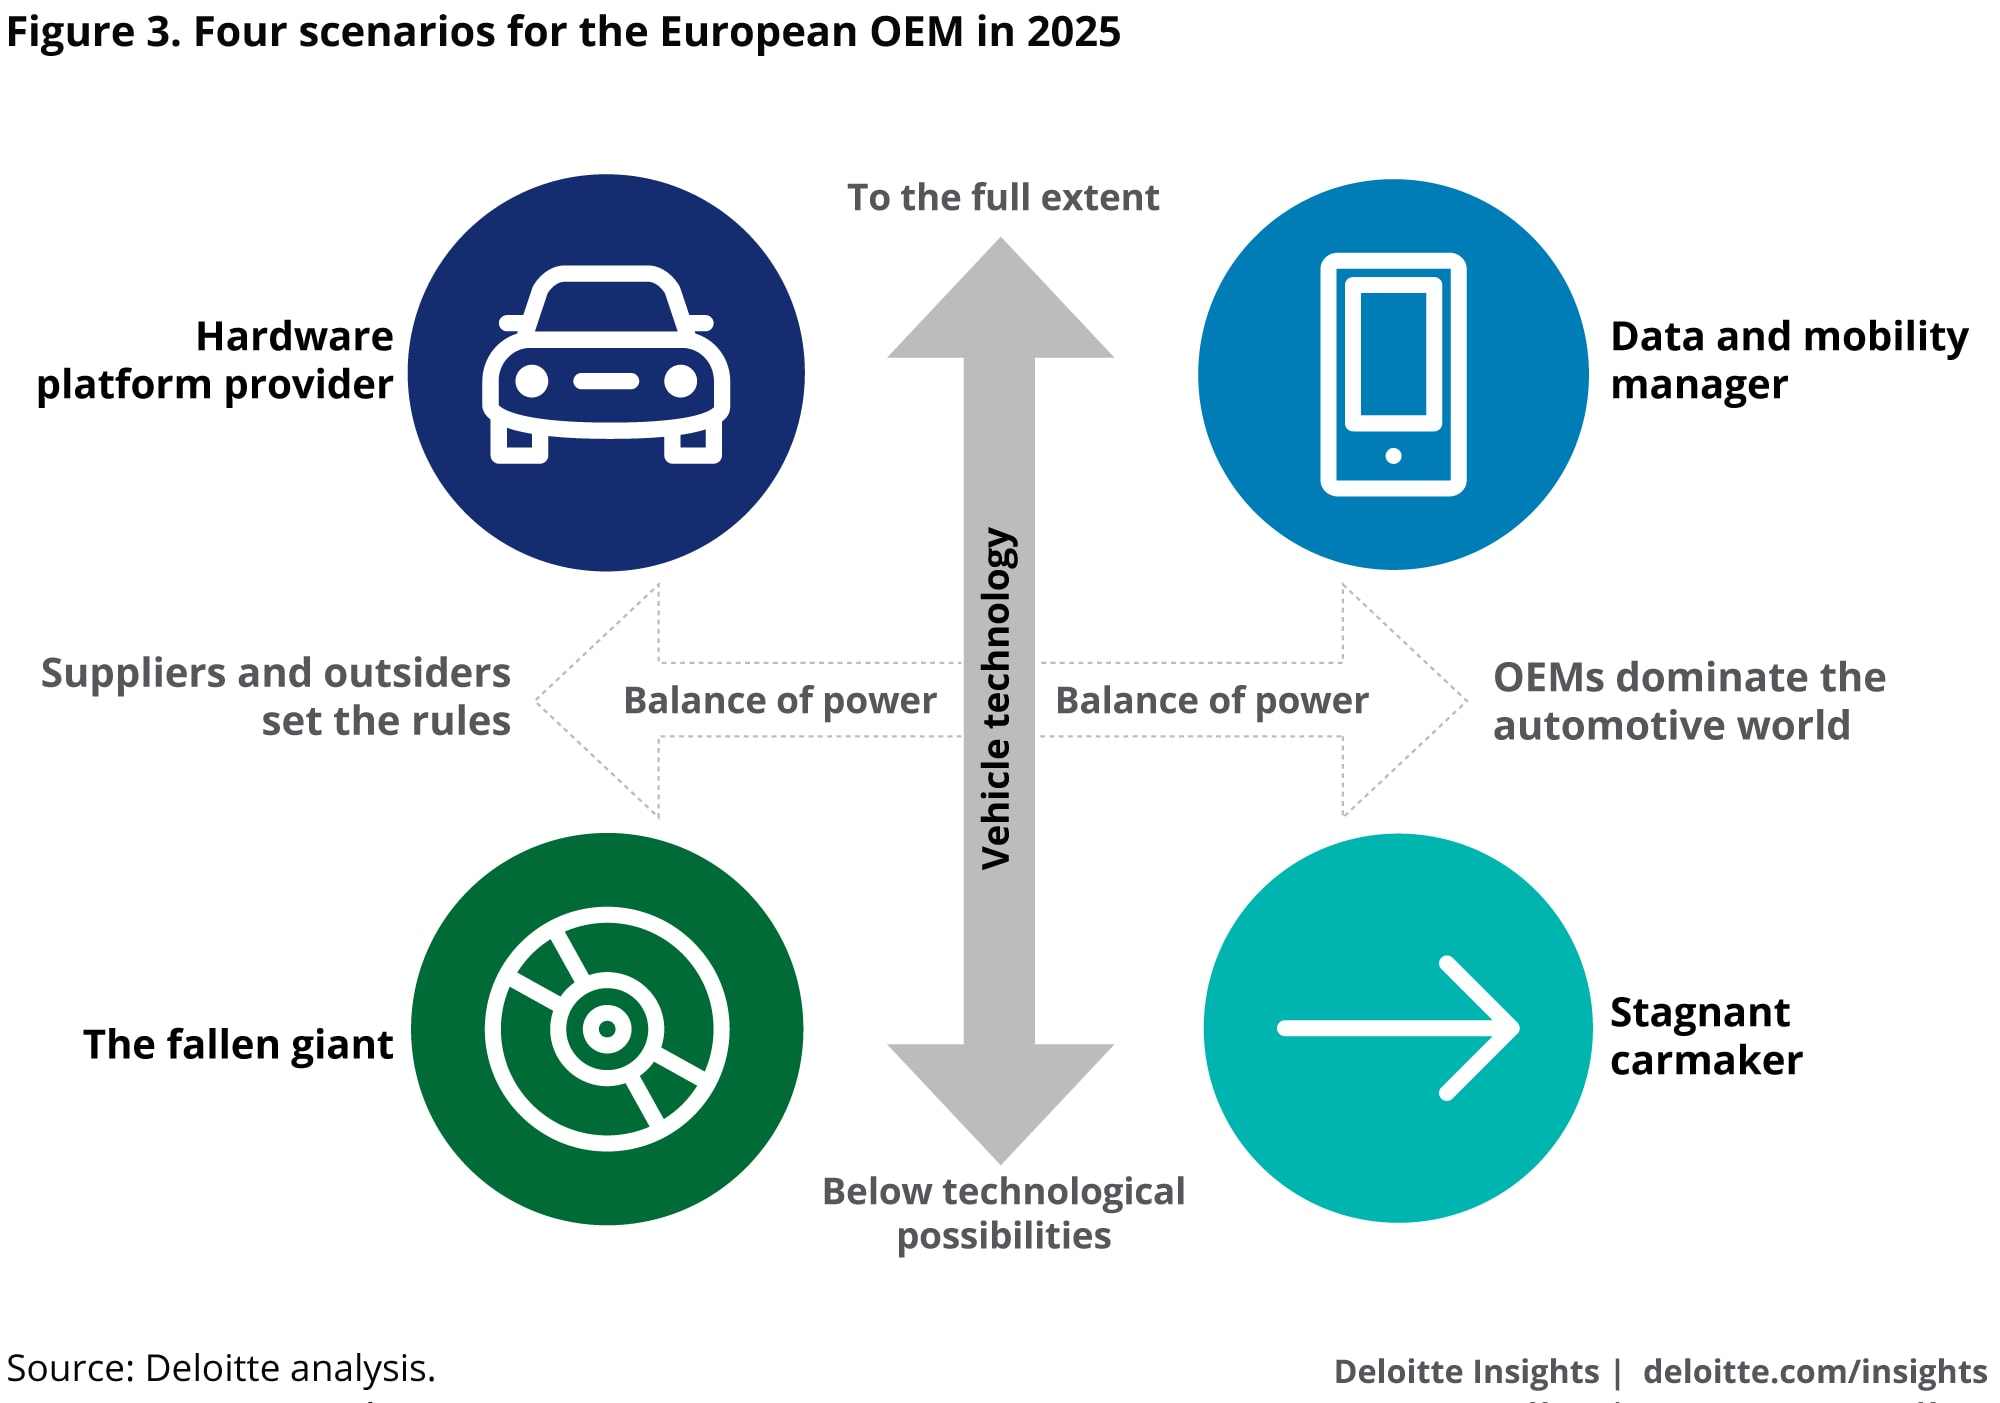 Four scenarios for the European OEM in 2025